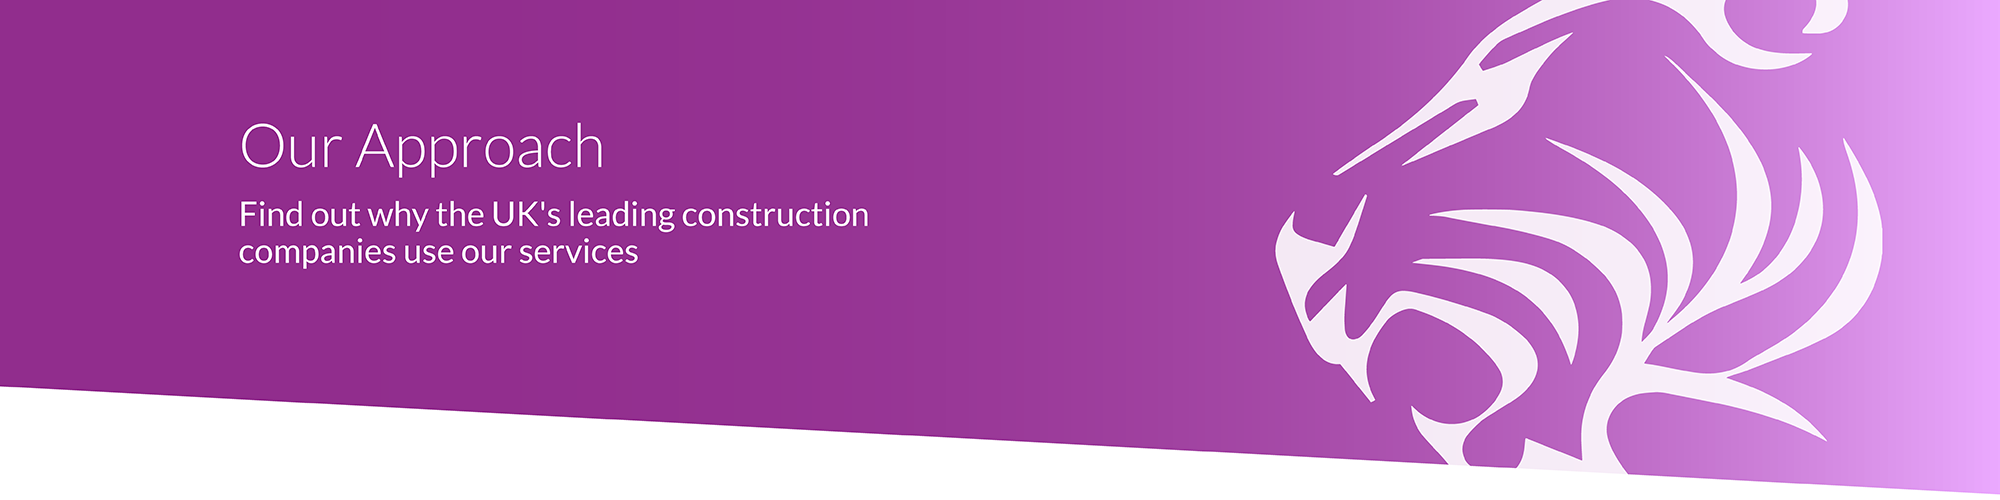 Our Approach Find out why the UK's leading construction companies use our services